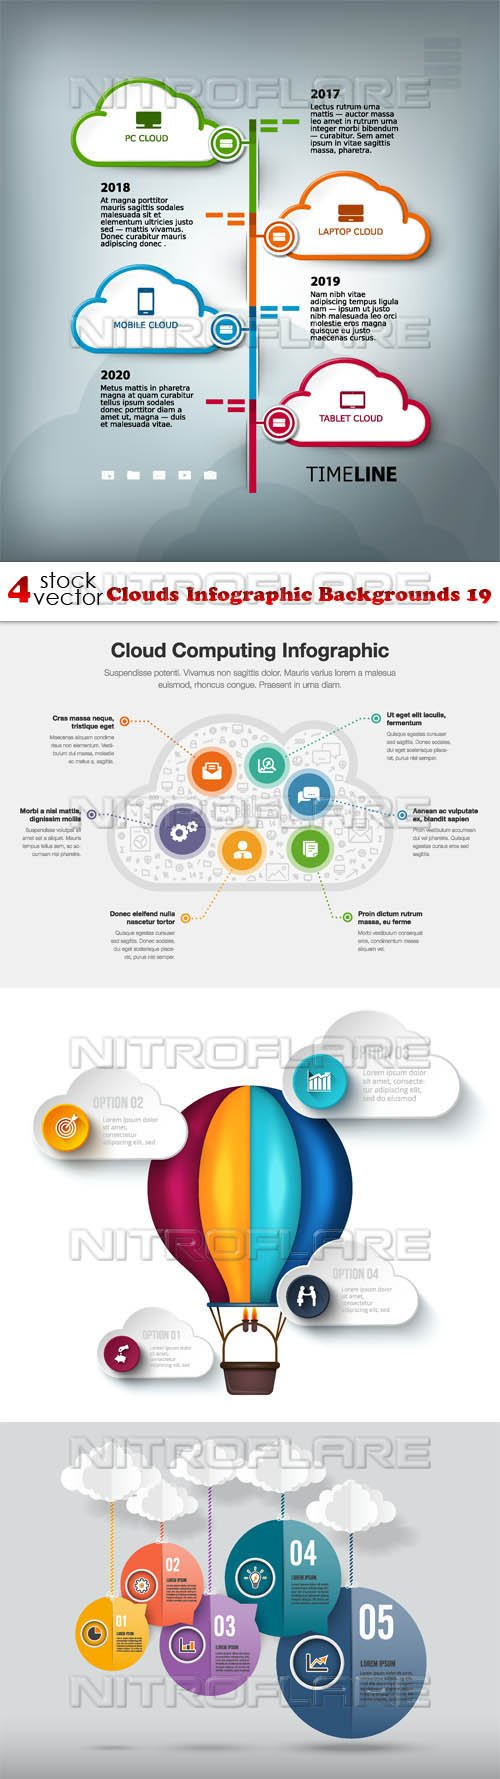 Vectors - Clouds Infographic Backgrounds 19